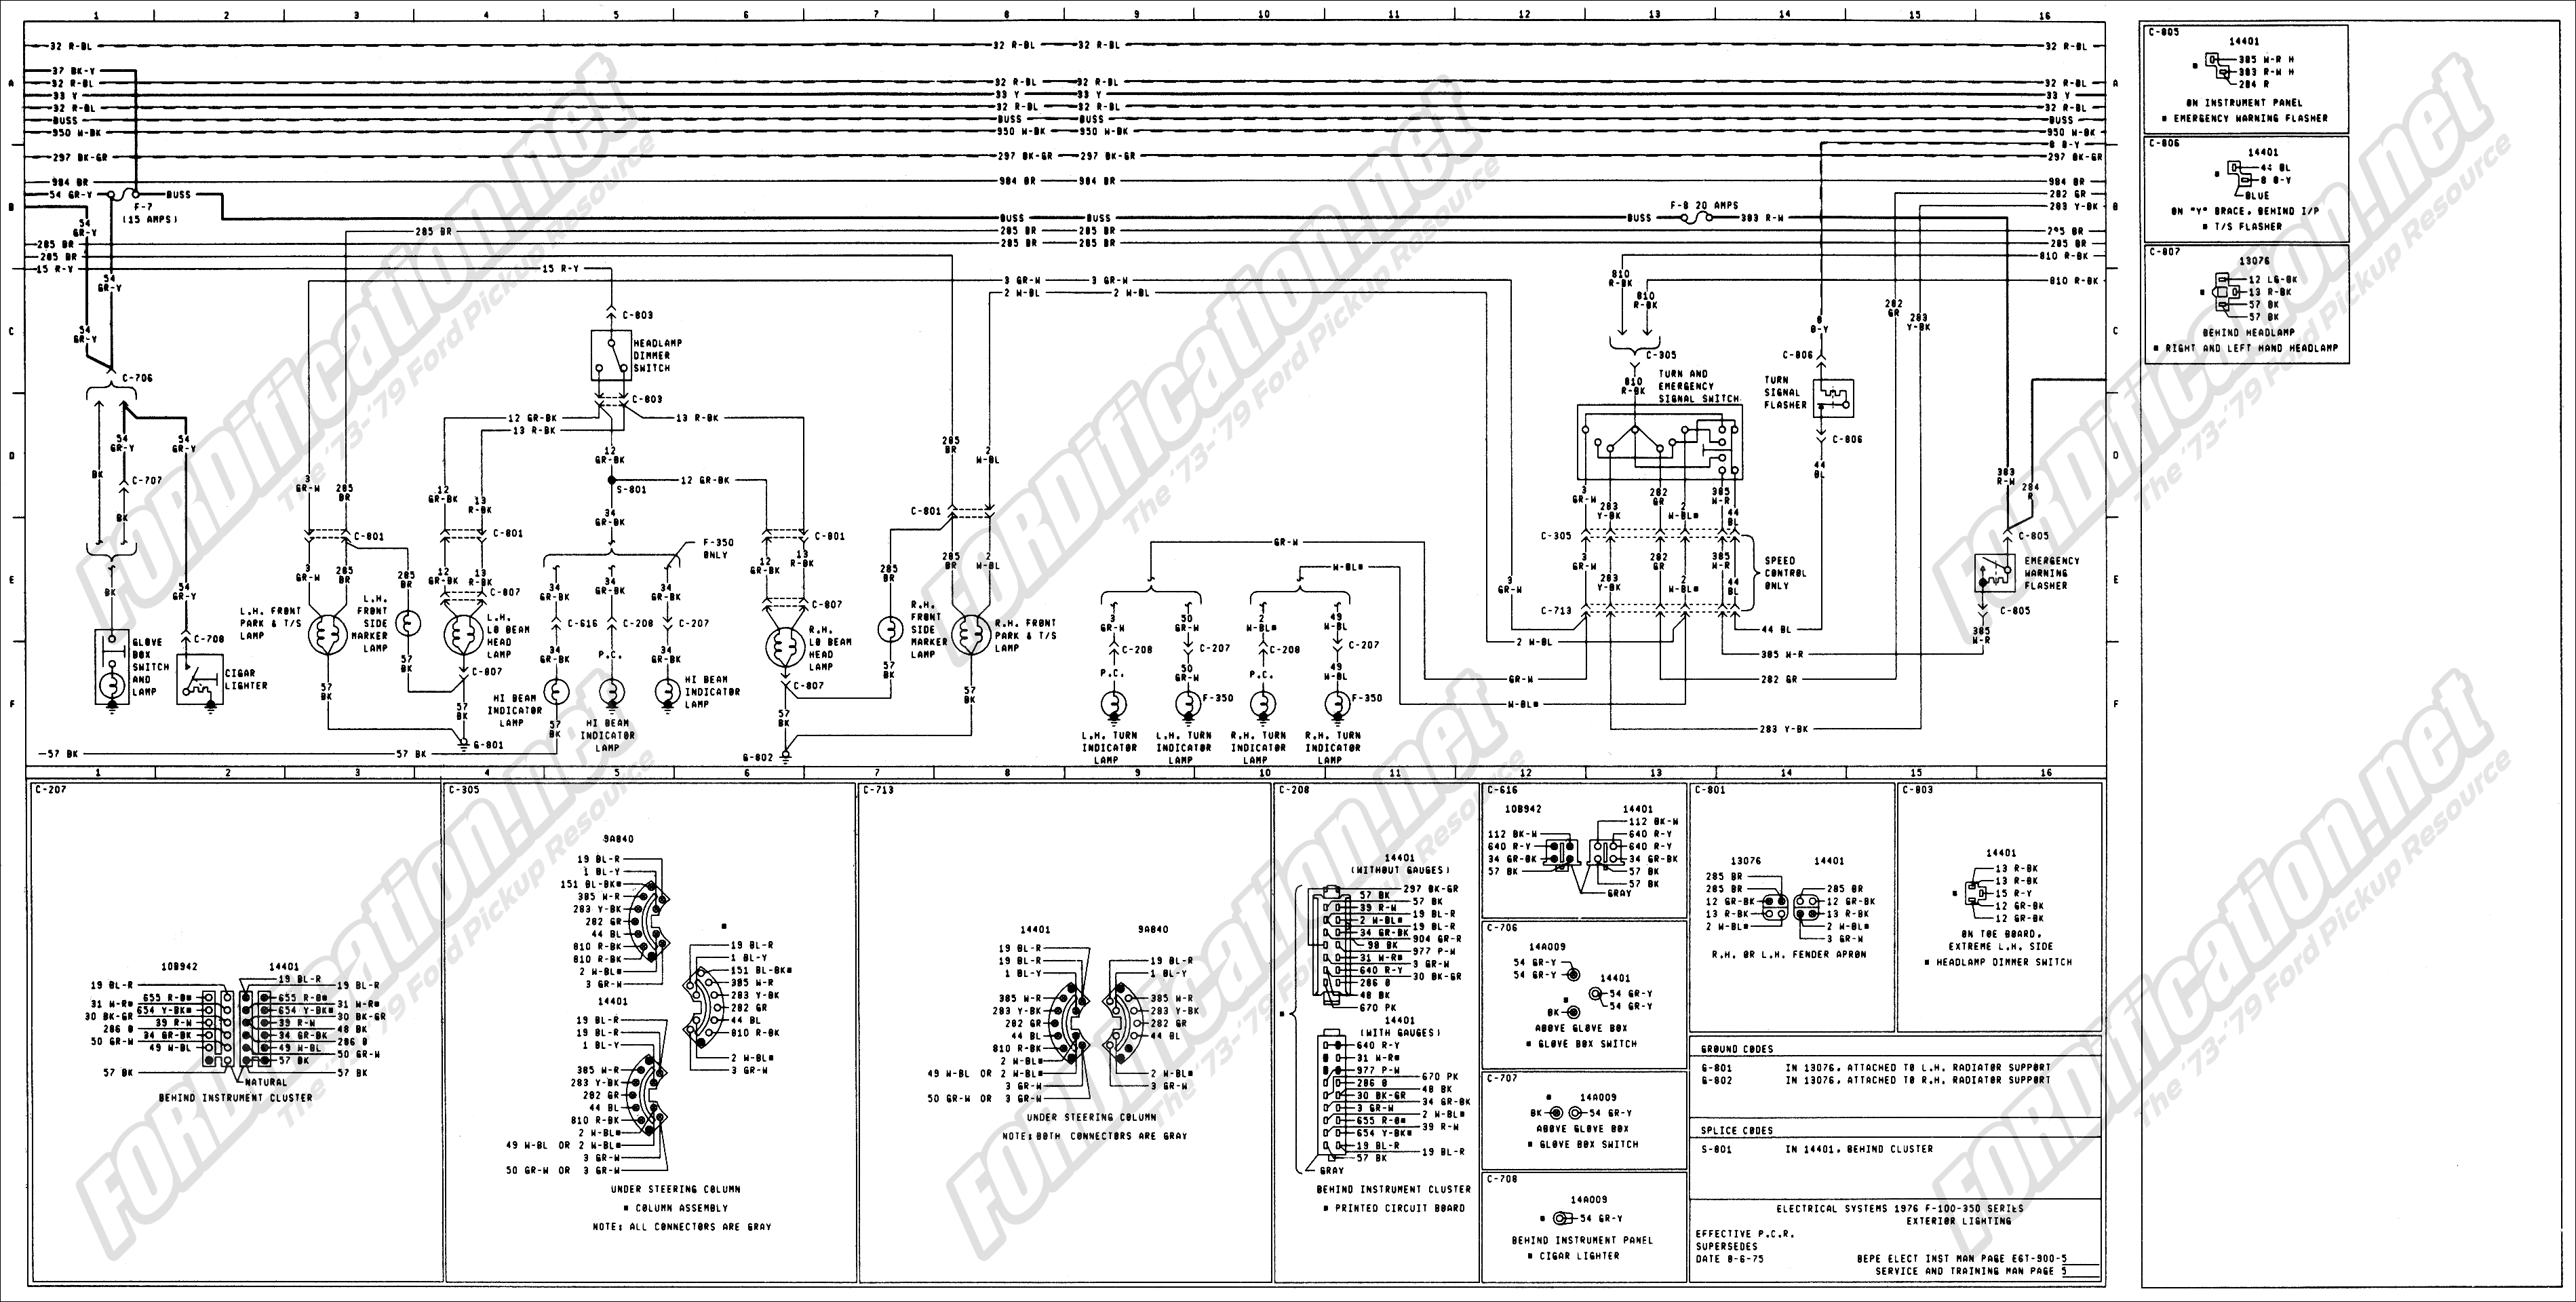 wiring_76master_5of9 1973 1979 ford truck wiring diagrams & schematics fordification net Ford Tail Light Wiring Diagram at nearapp.co